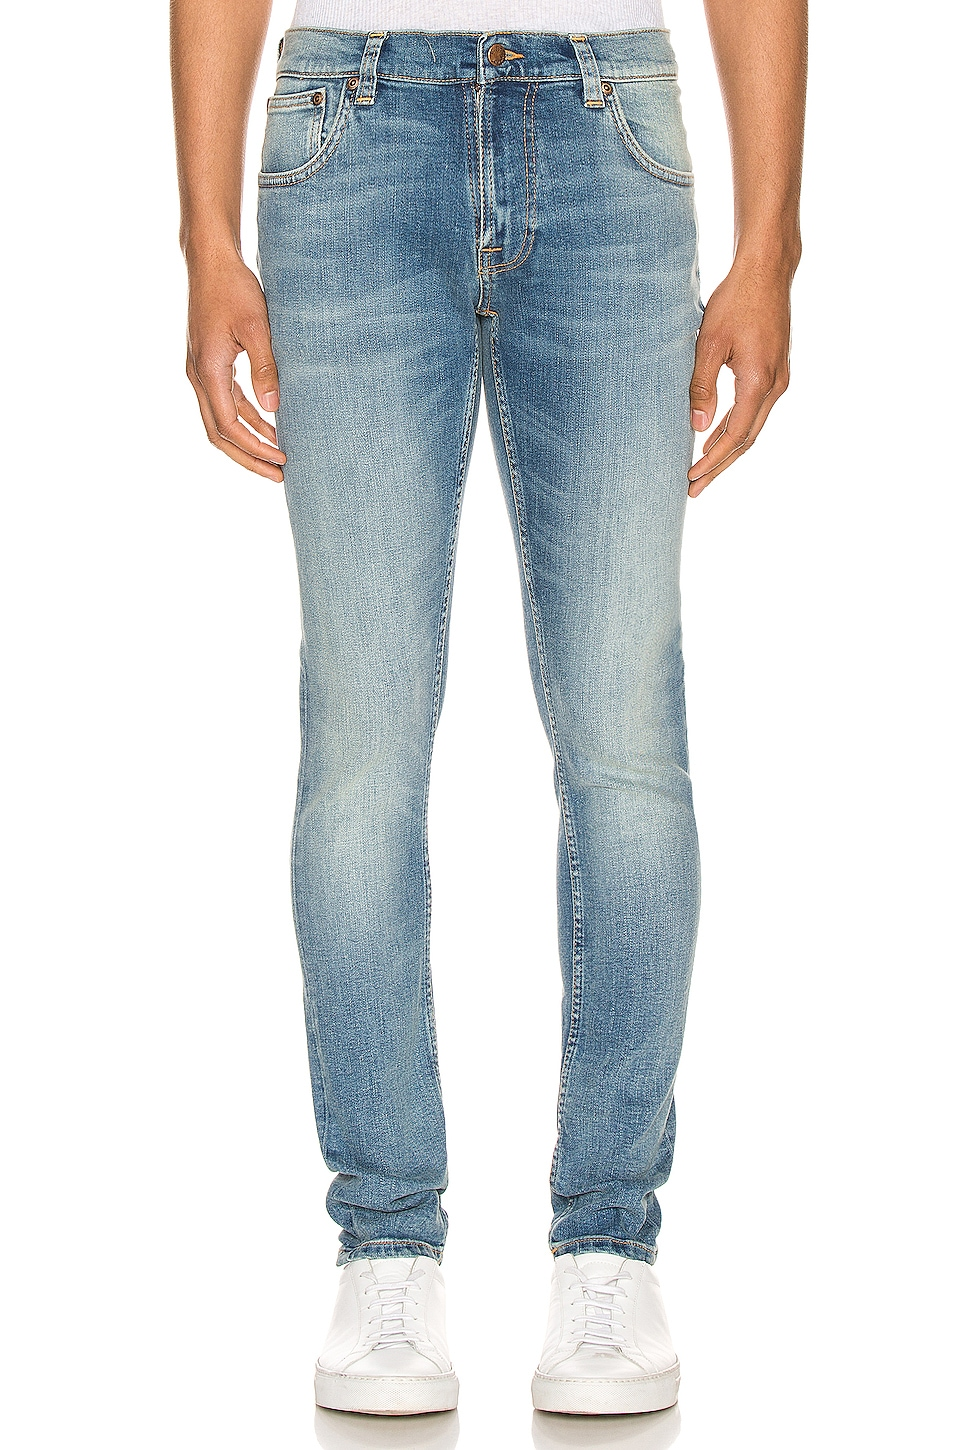 Nudie Jeans Tight Terry in Summer Dust